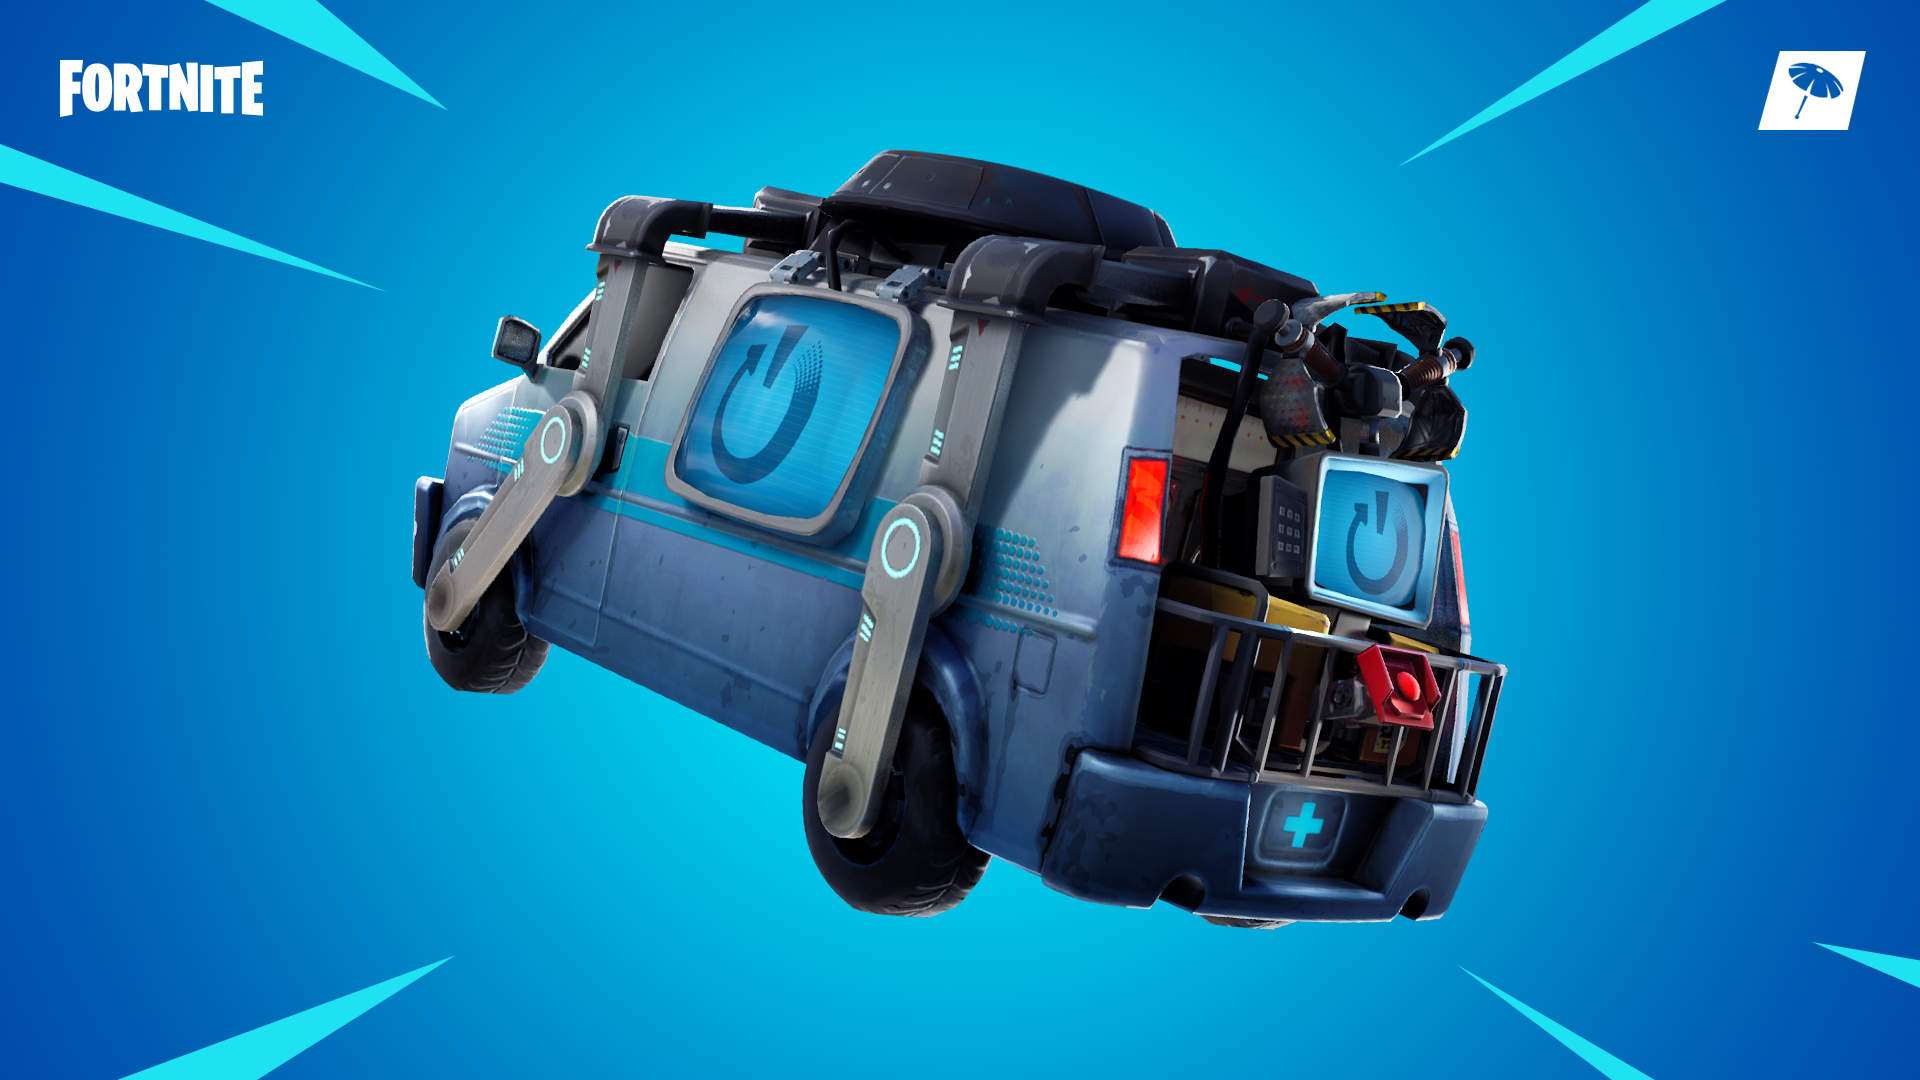 08br vehicle rebootvan social jpg - boutique fortnite 2 avril 2019